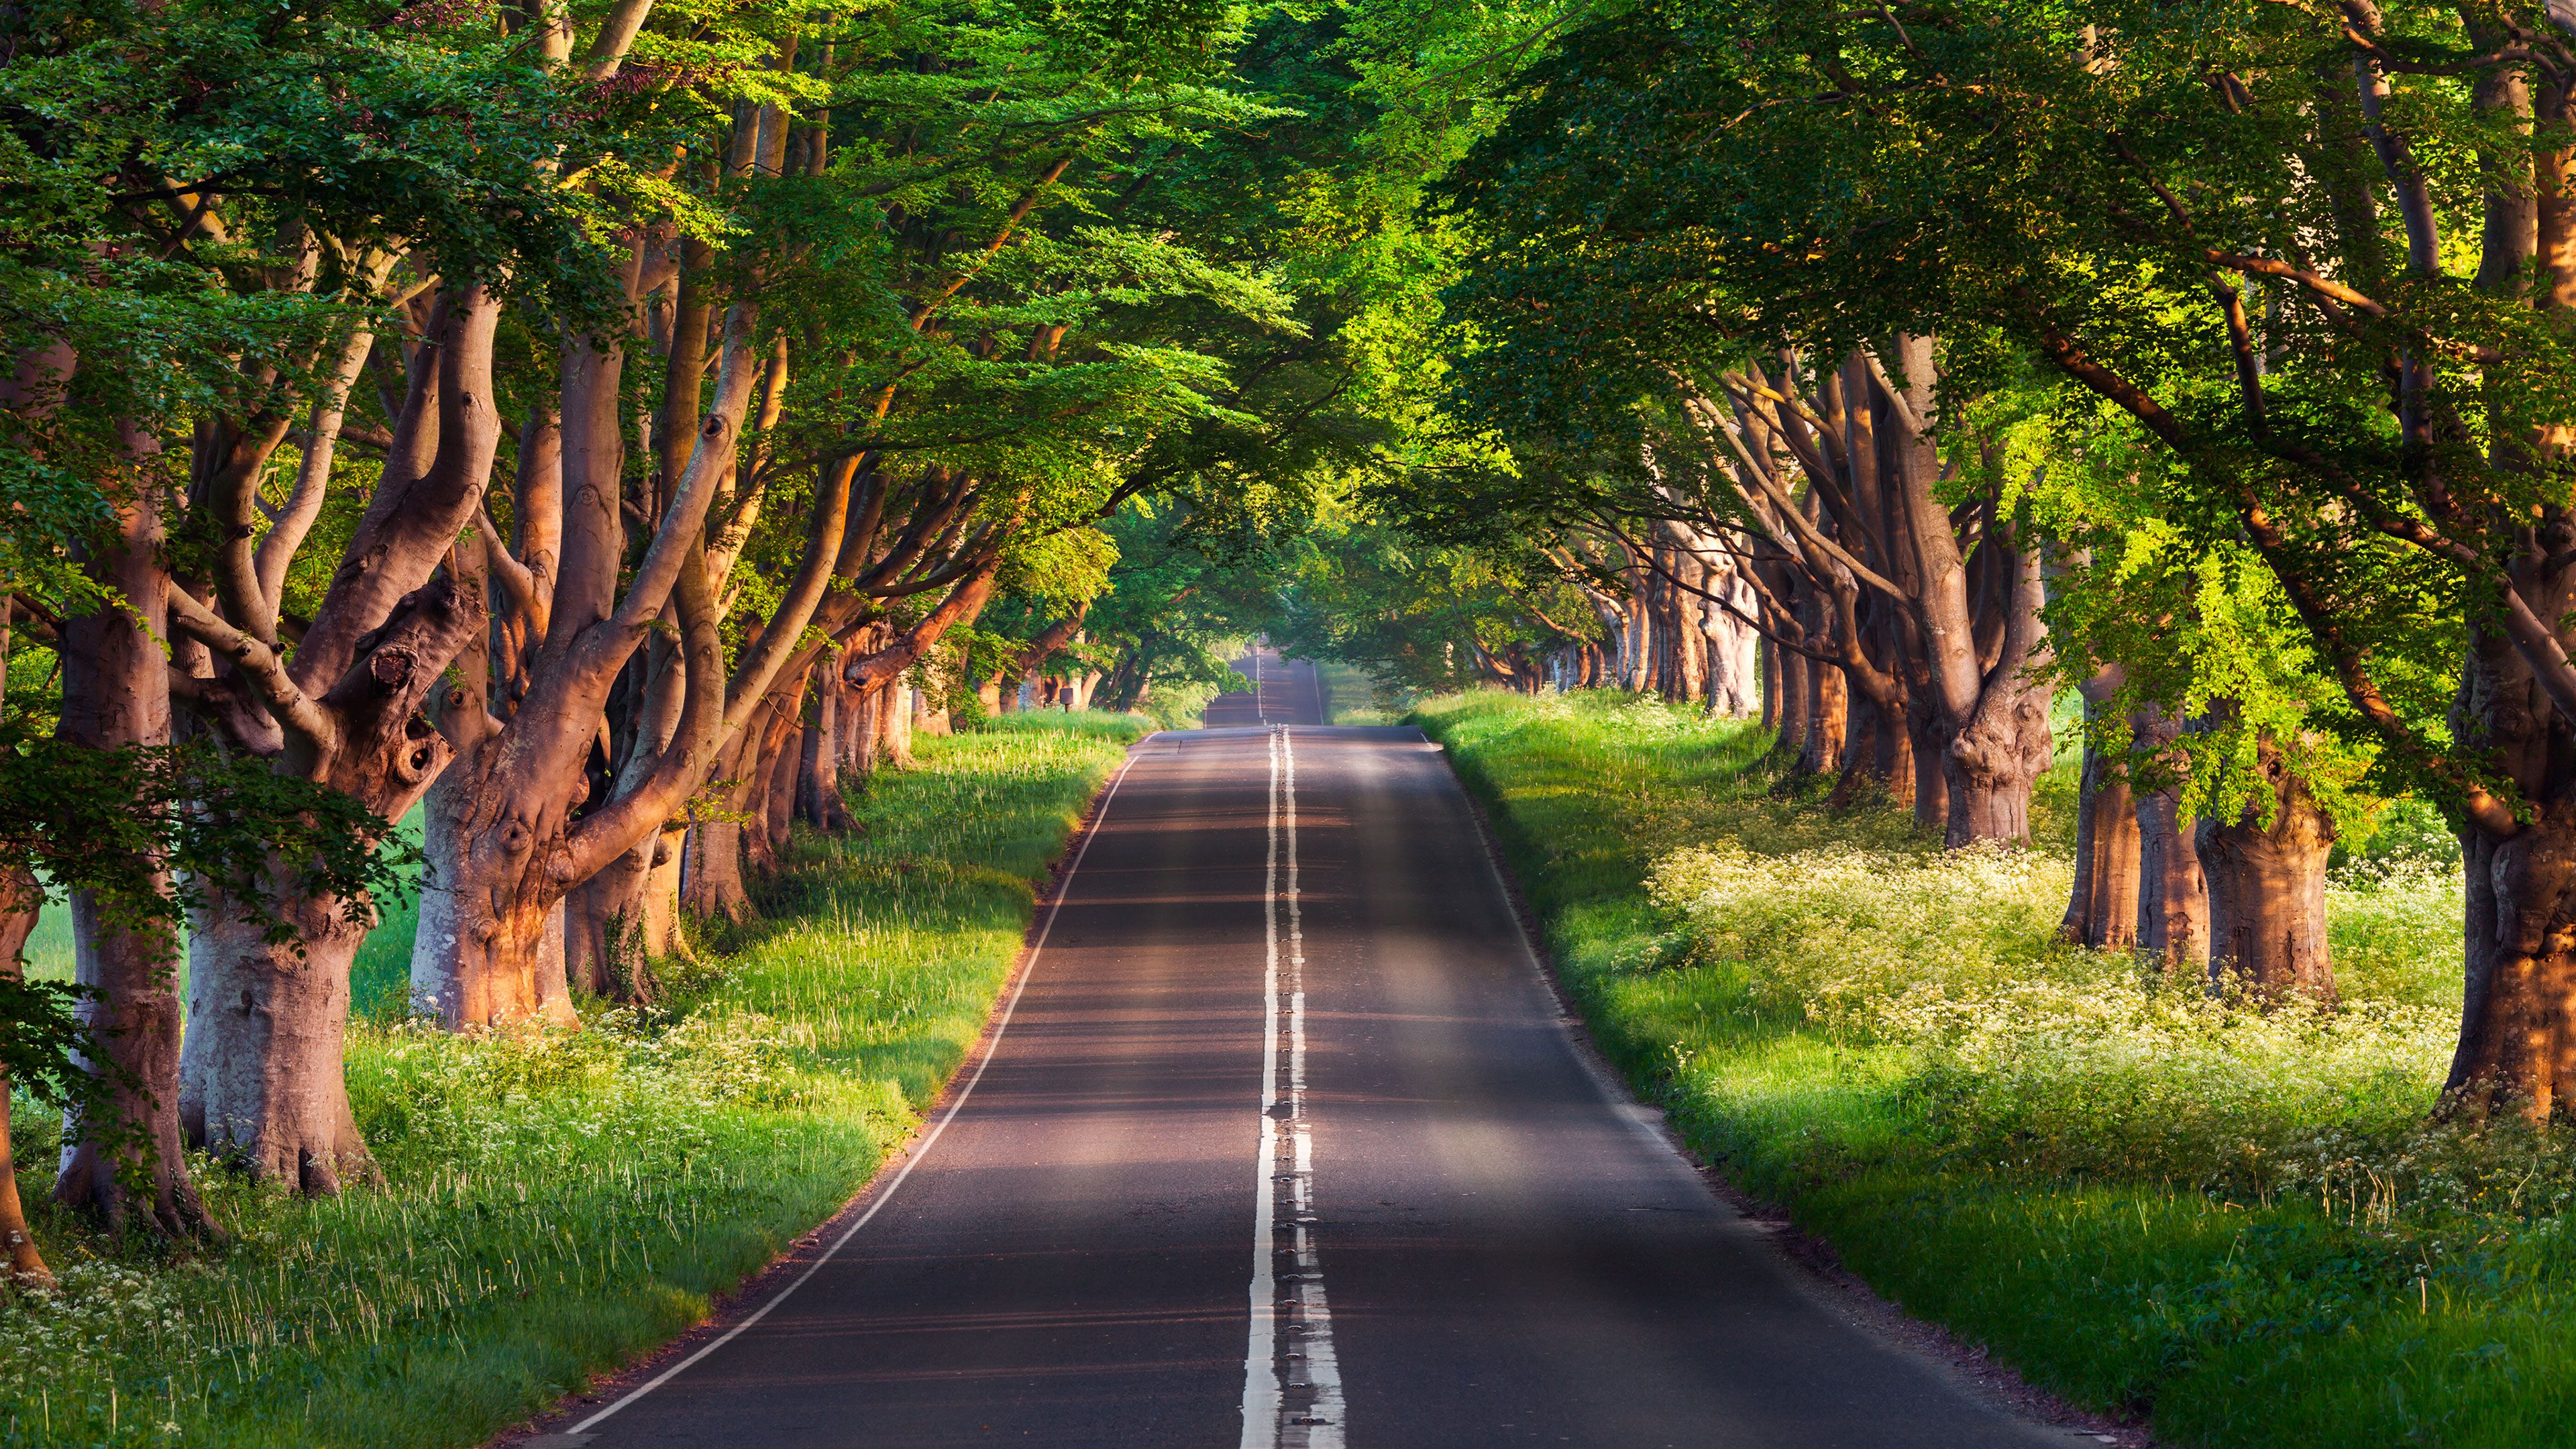 4k Road Covered Trees